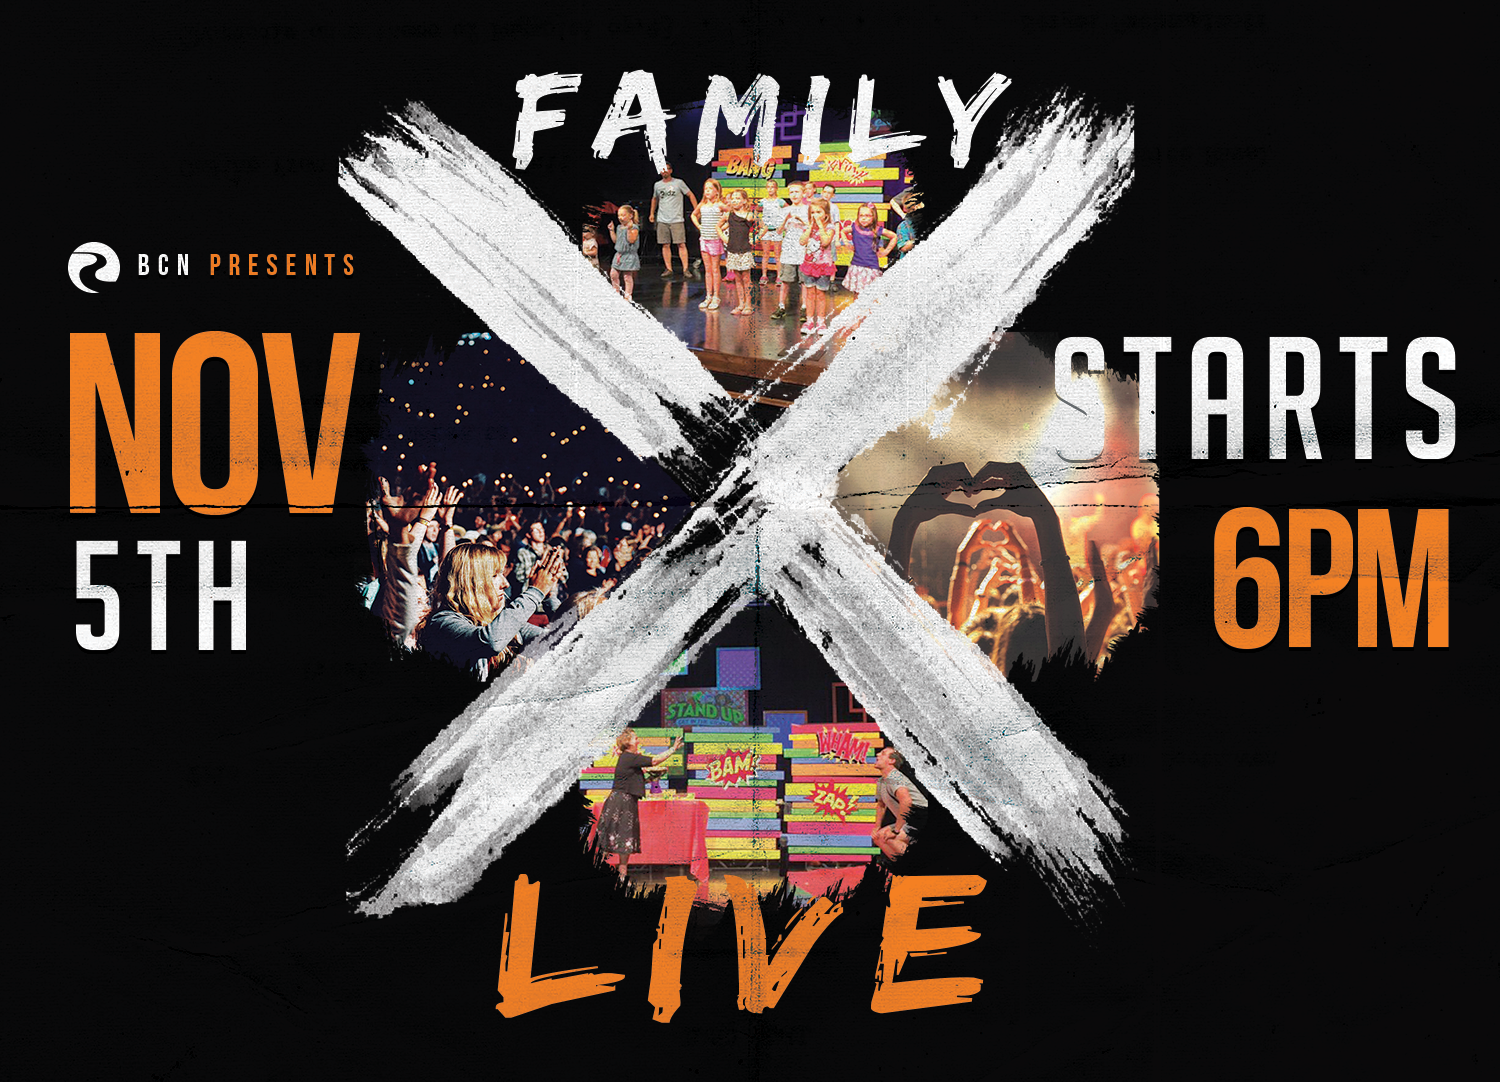 FX-live-events